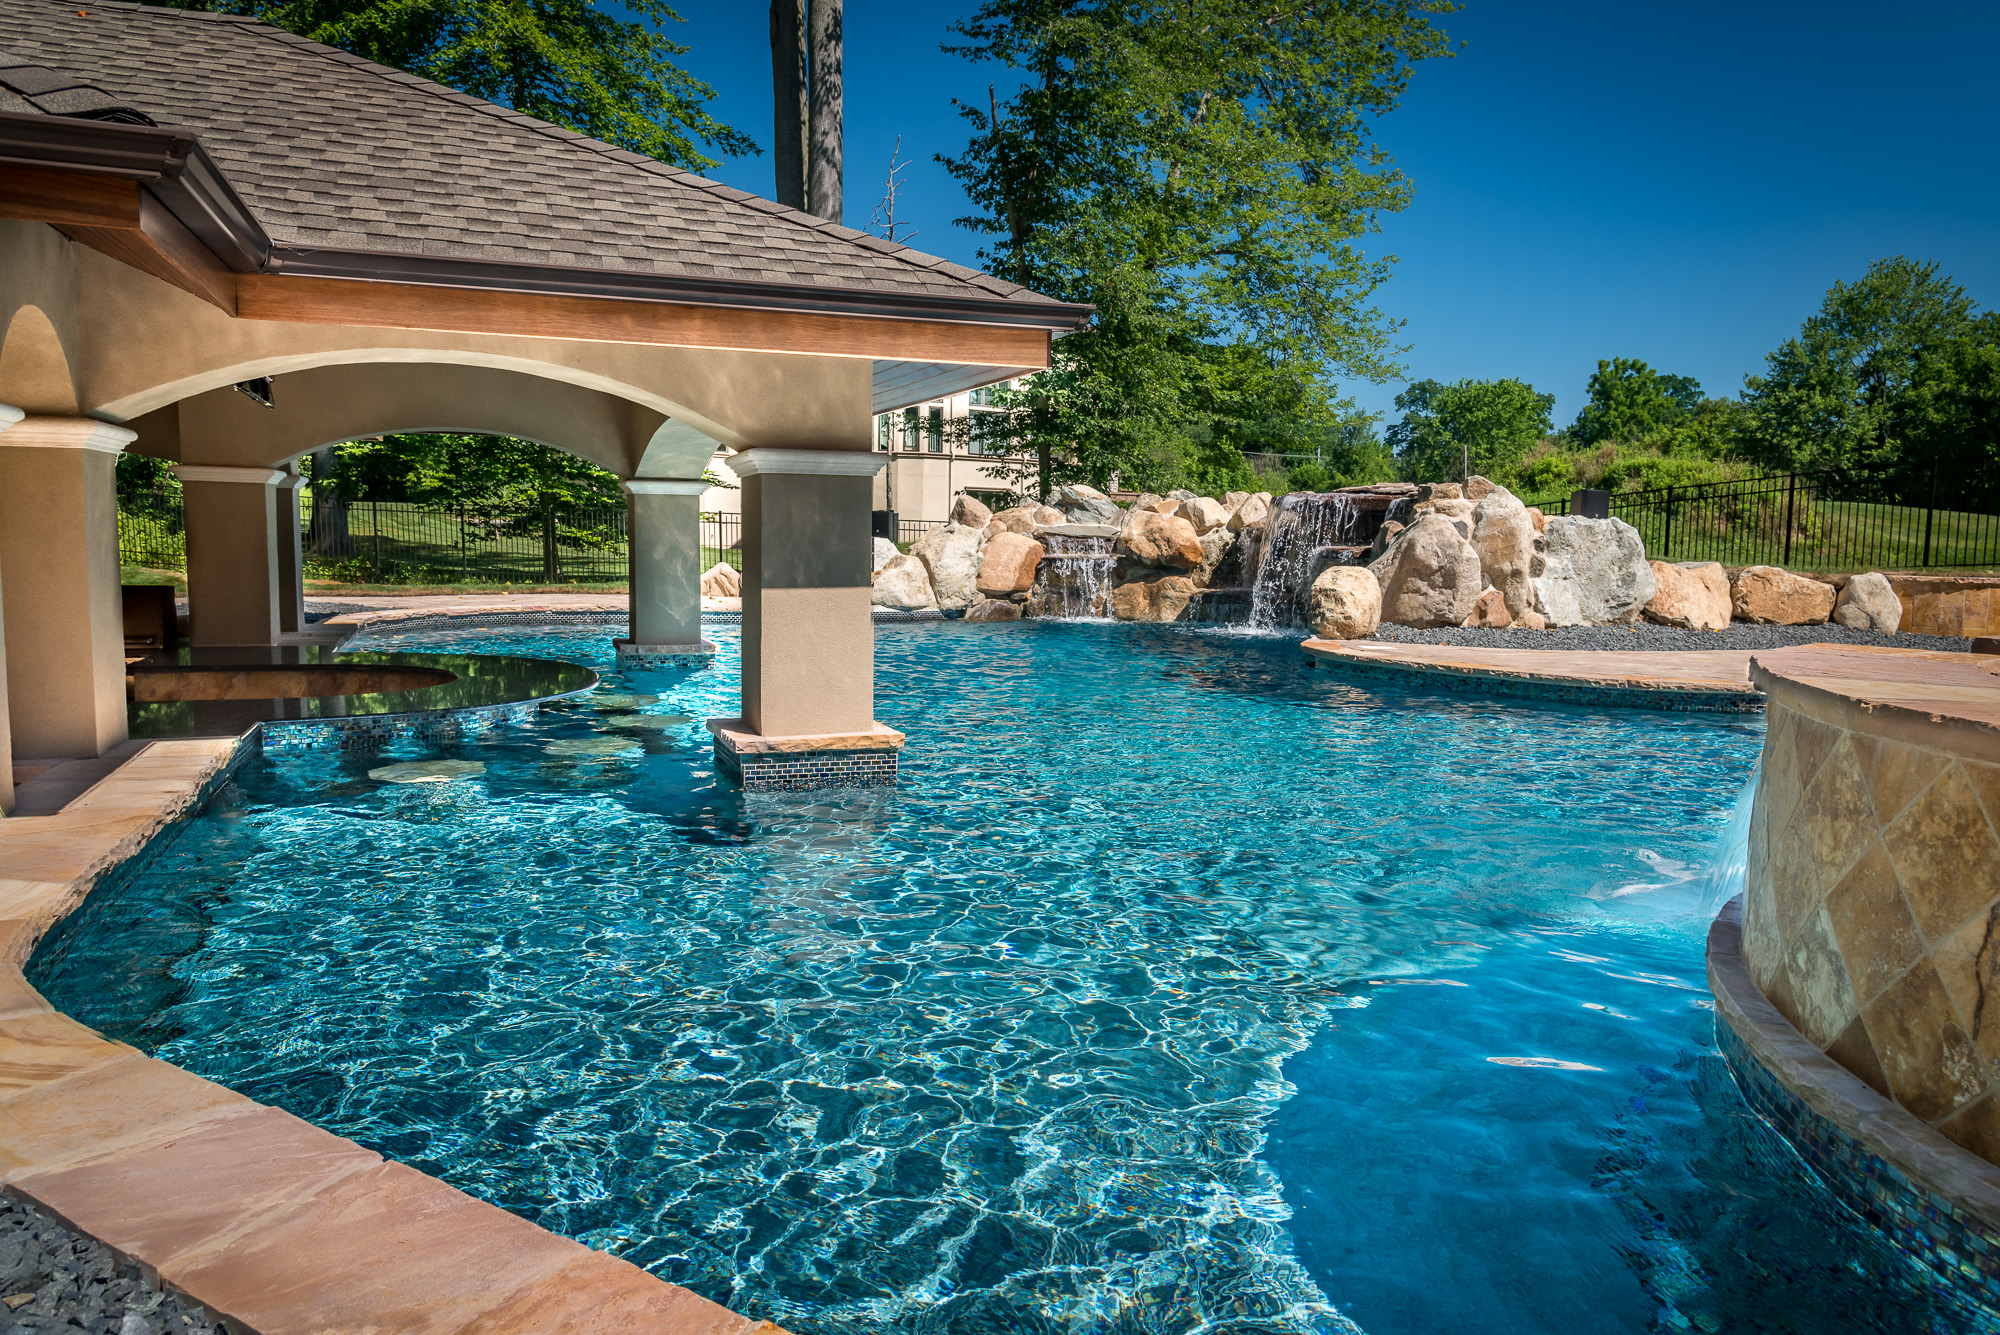 Holmdel nj custom inground swimming pool design for Pool design hamilton nj